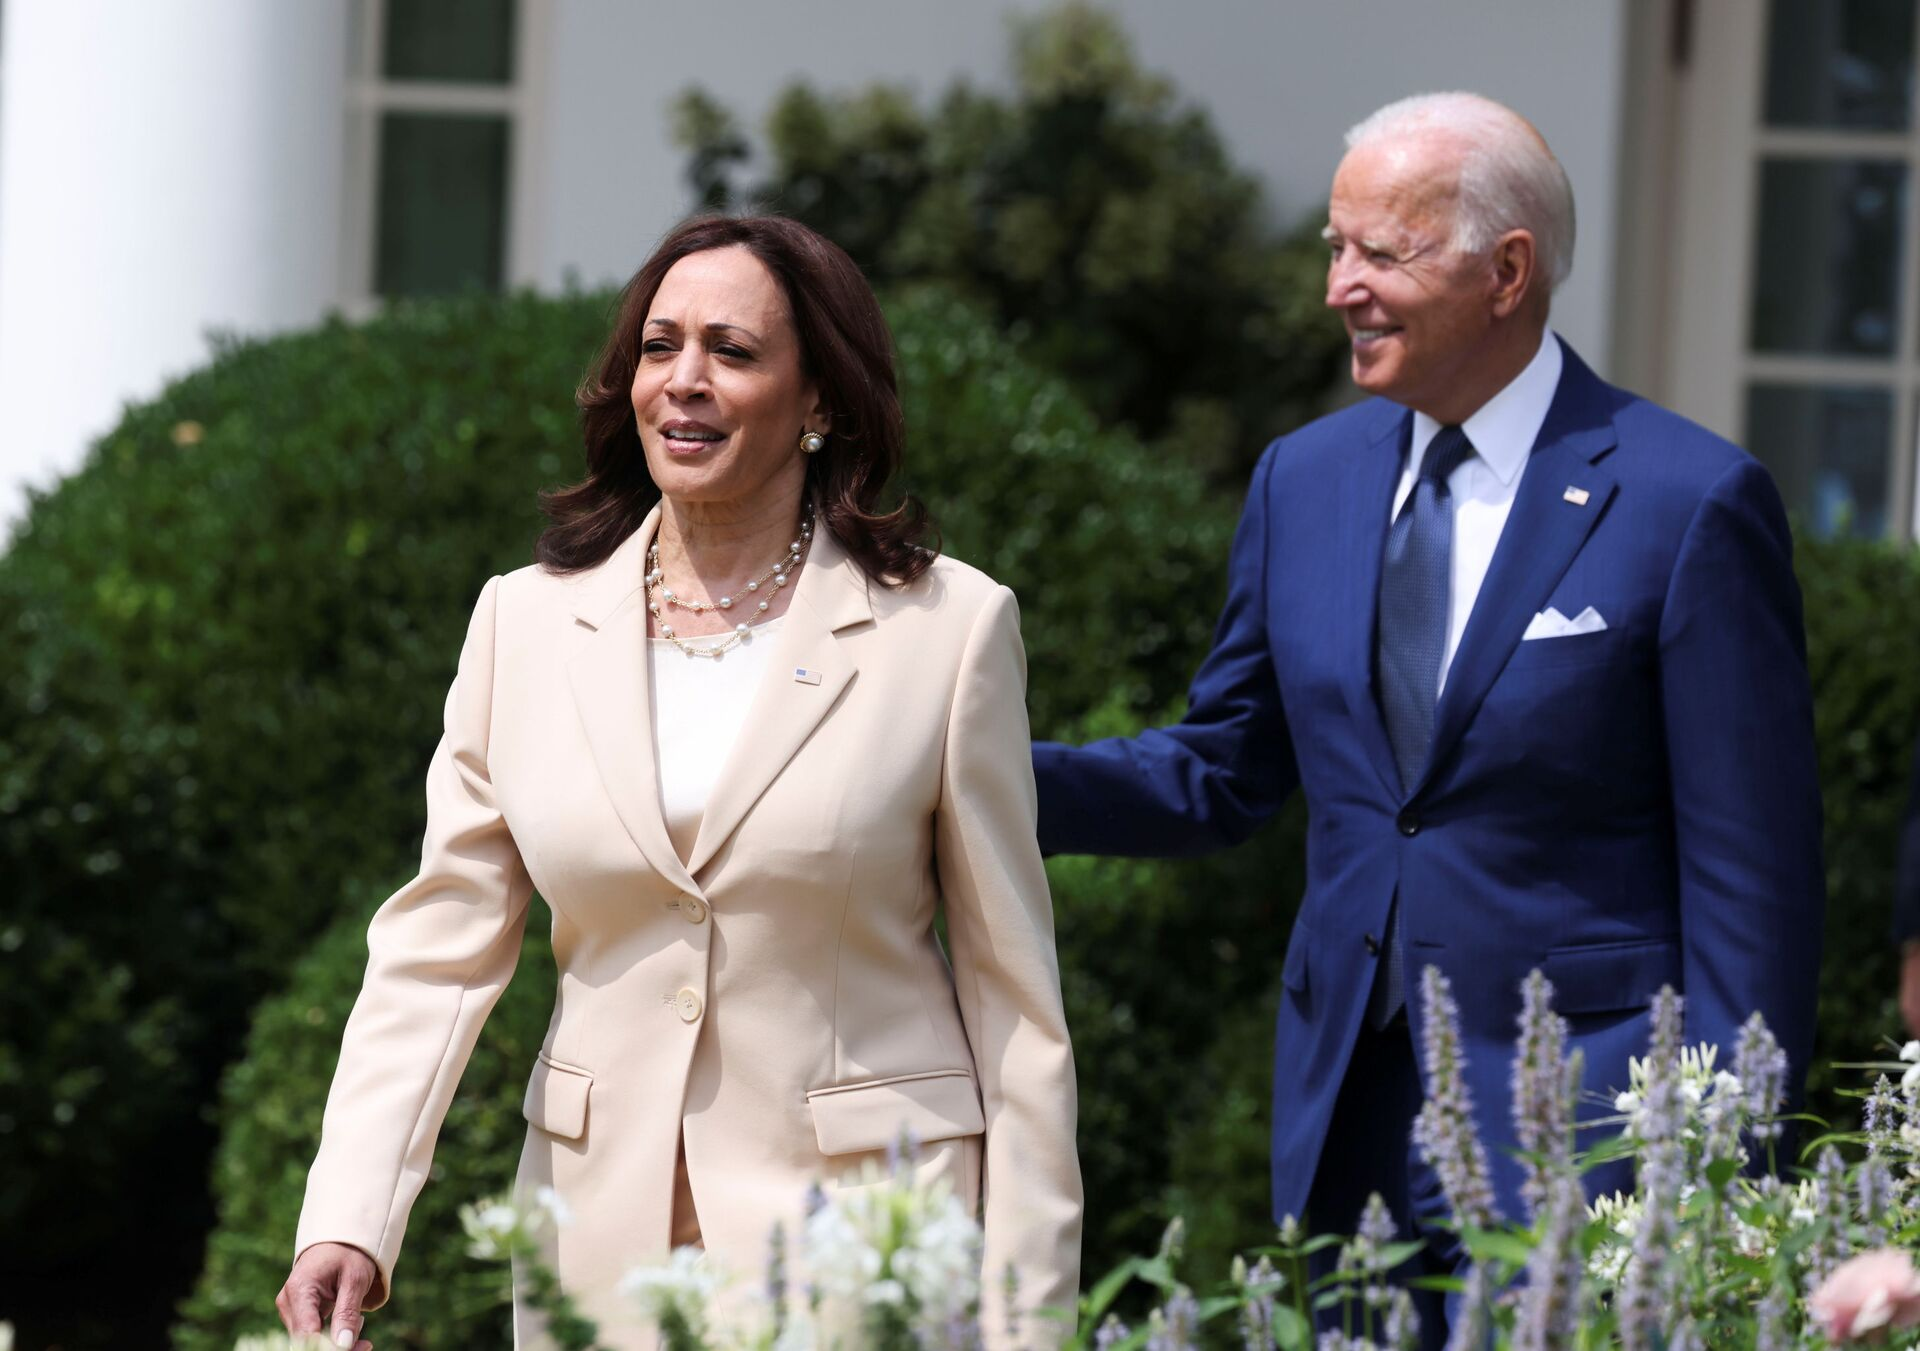 U.S. President Joe Biden and Vice President Kamala Harris arrive for an event to celebrate the 31st anniversary of the Americans with Disabilities Act (ADA) in the White House Rose Garden in Washington, U.S., July 26, 2021 - Sputnik International, 1920, 07.09.2021